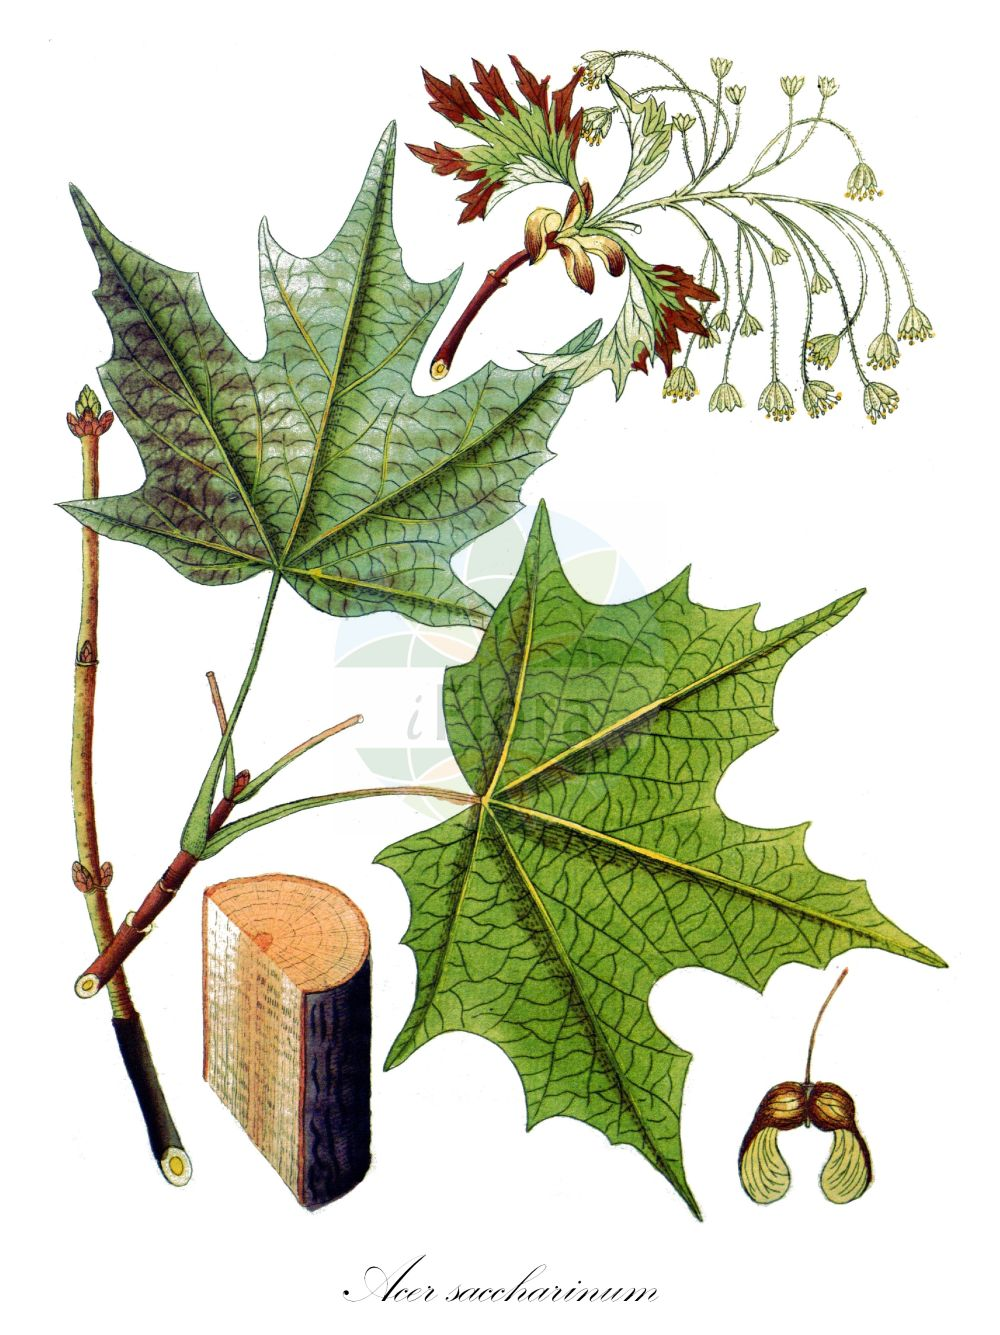 Historische Abbildung von Acer saccharinum (Silber-Ahorn - Silver Maple). Das Bild zeigt Blatt, Bluete, Frucht und Same. ---- Historical Drawing of Acer saccharinum (Silber-Ahorn - Silver Maple).The image is showing leaf, flower, fruit and seed. (Acer saccharinum,Silber-Ahorn,Silver Maple,Acer dasycarpum,,Creek Maple,River Maple,Silverleaf Maple,Soft Maple,Swamp Maple,Water Maple,White Maple,Sugar Maple,Acer,Ahorn,Maple,Sapindaceae,Seifenbaumgewaechse,Soapberry family,Blatt,Bluete,Frucht,Same,leaf,flower,fruit,seed,Vietz (1800-1822))